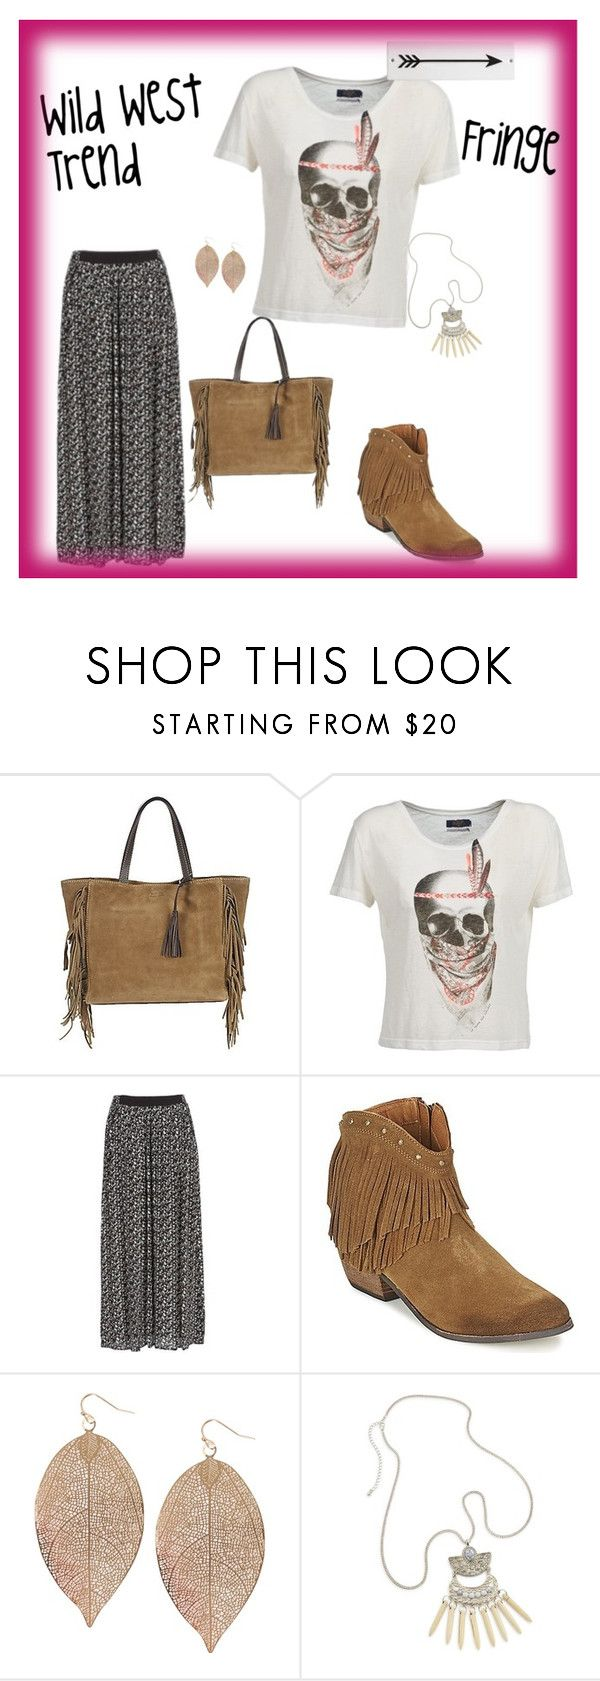 """""""Wild West Trend"""" by spartoouk ❤ liked on Polyvore featuring Loxwood, Le Temps Des Cerises, Naf Naf, Minnetonka, Humble Chic and Rosanna"""